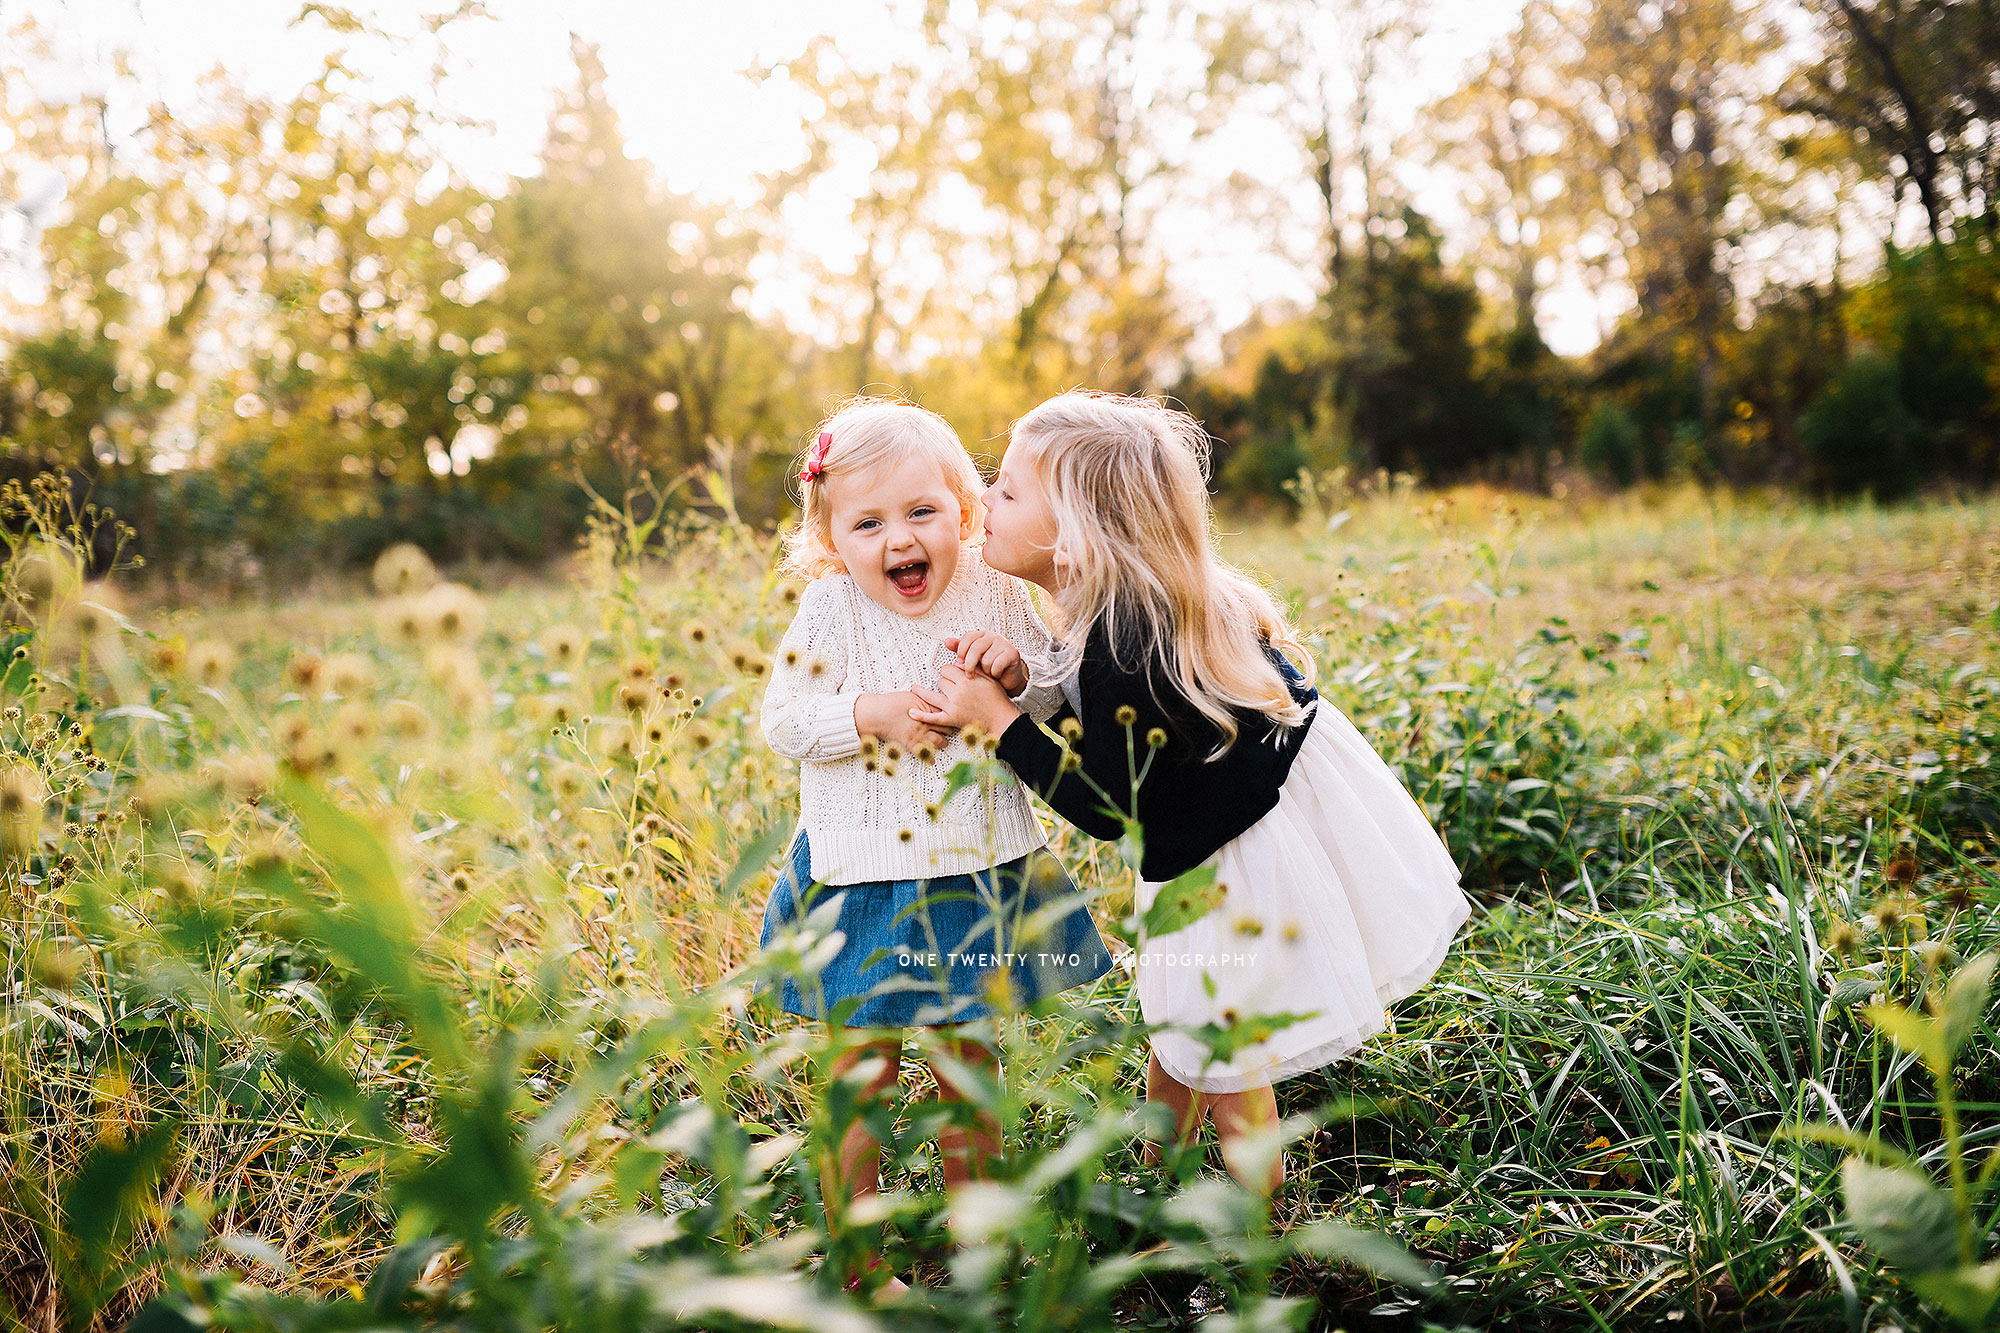 ladue-preschool-sisters-laughing-in-field-best-child-photographer-one-twenty-two.jpg